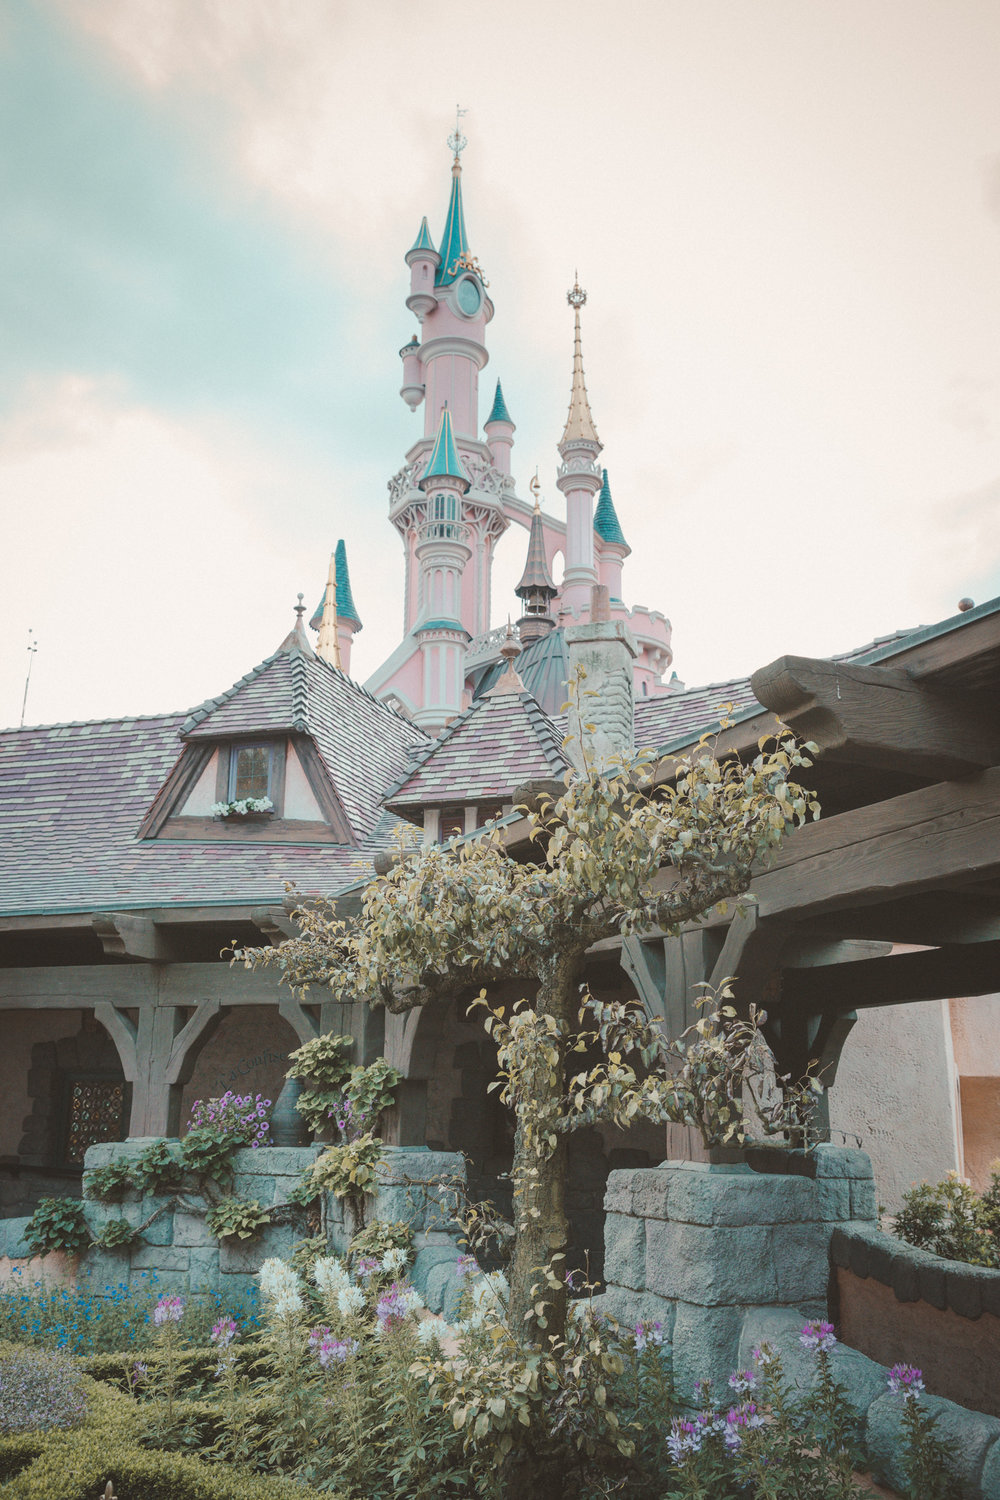 Disneyland Paris Photo Emily Dahl-16.jpg